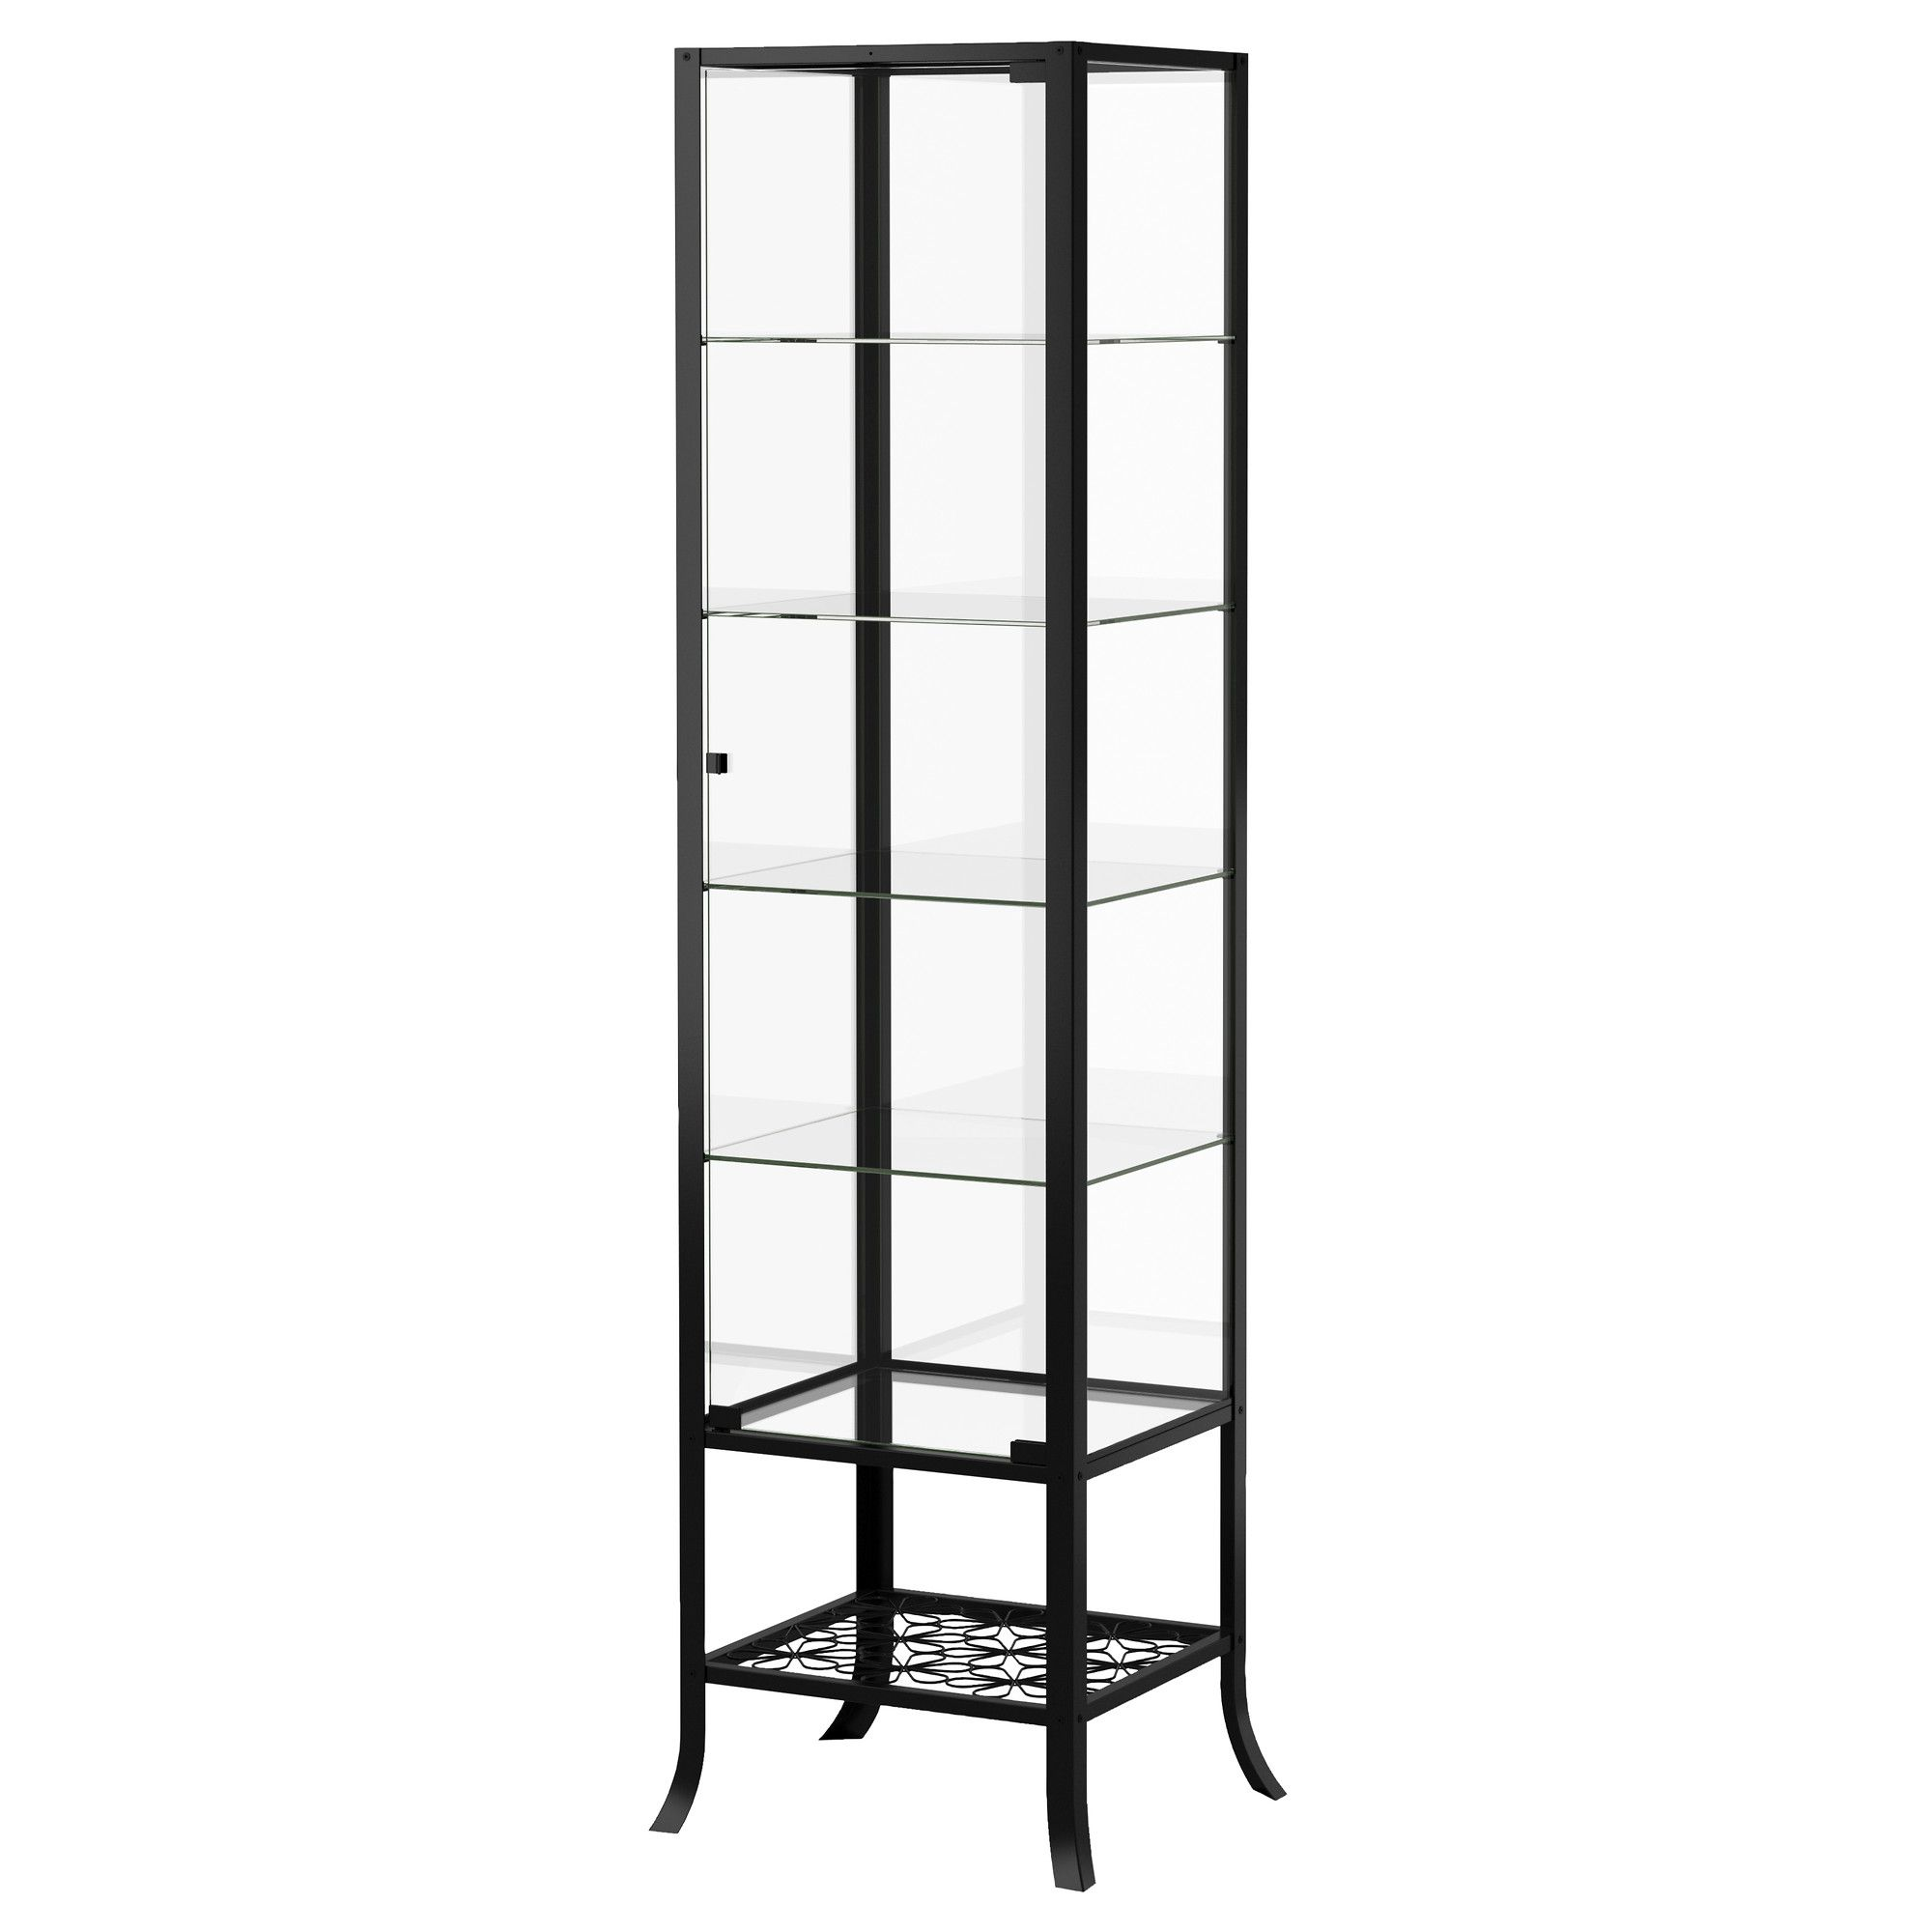 KLINGSBO Glass-door cabinet, black, clear glass | Glass doors ...